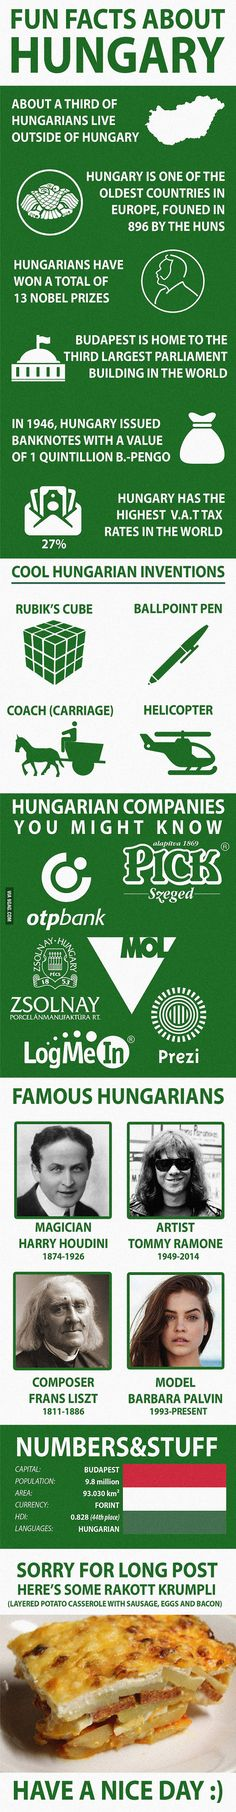 Fun Facts about Hungary - 9GAG